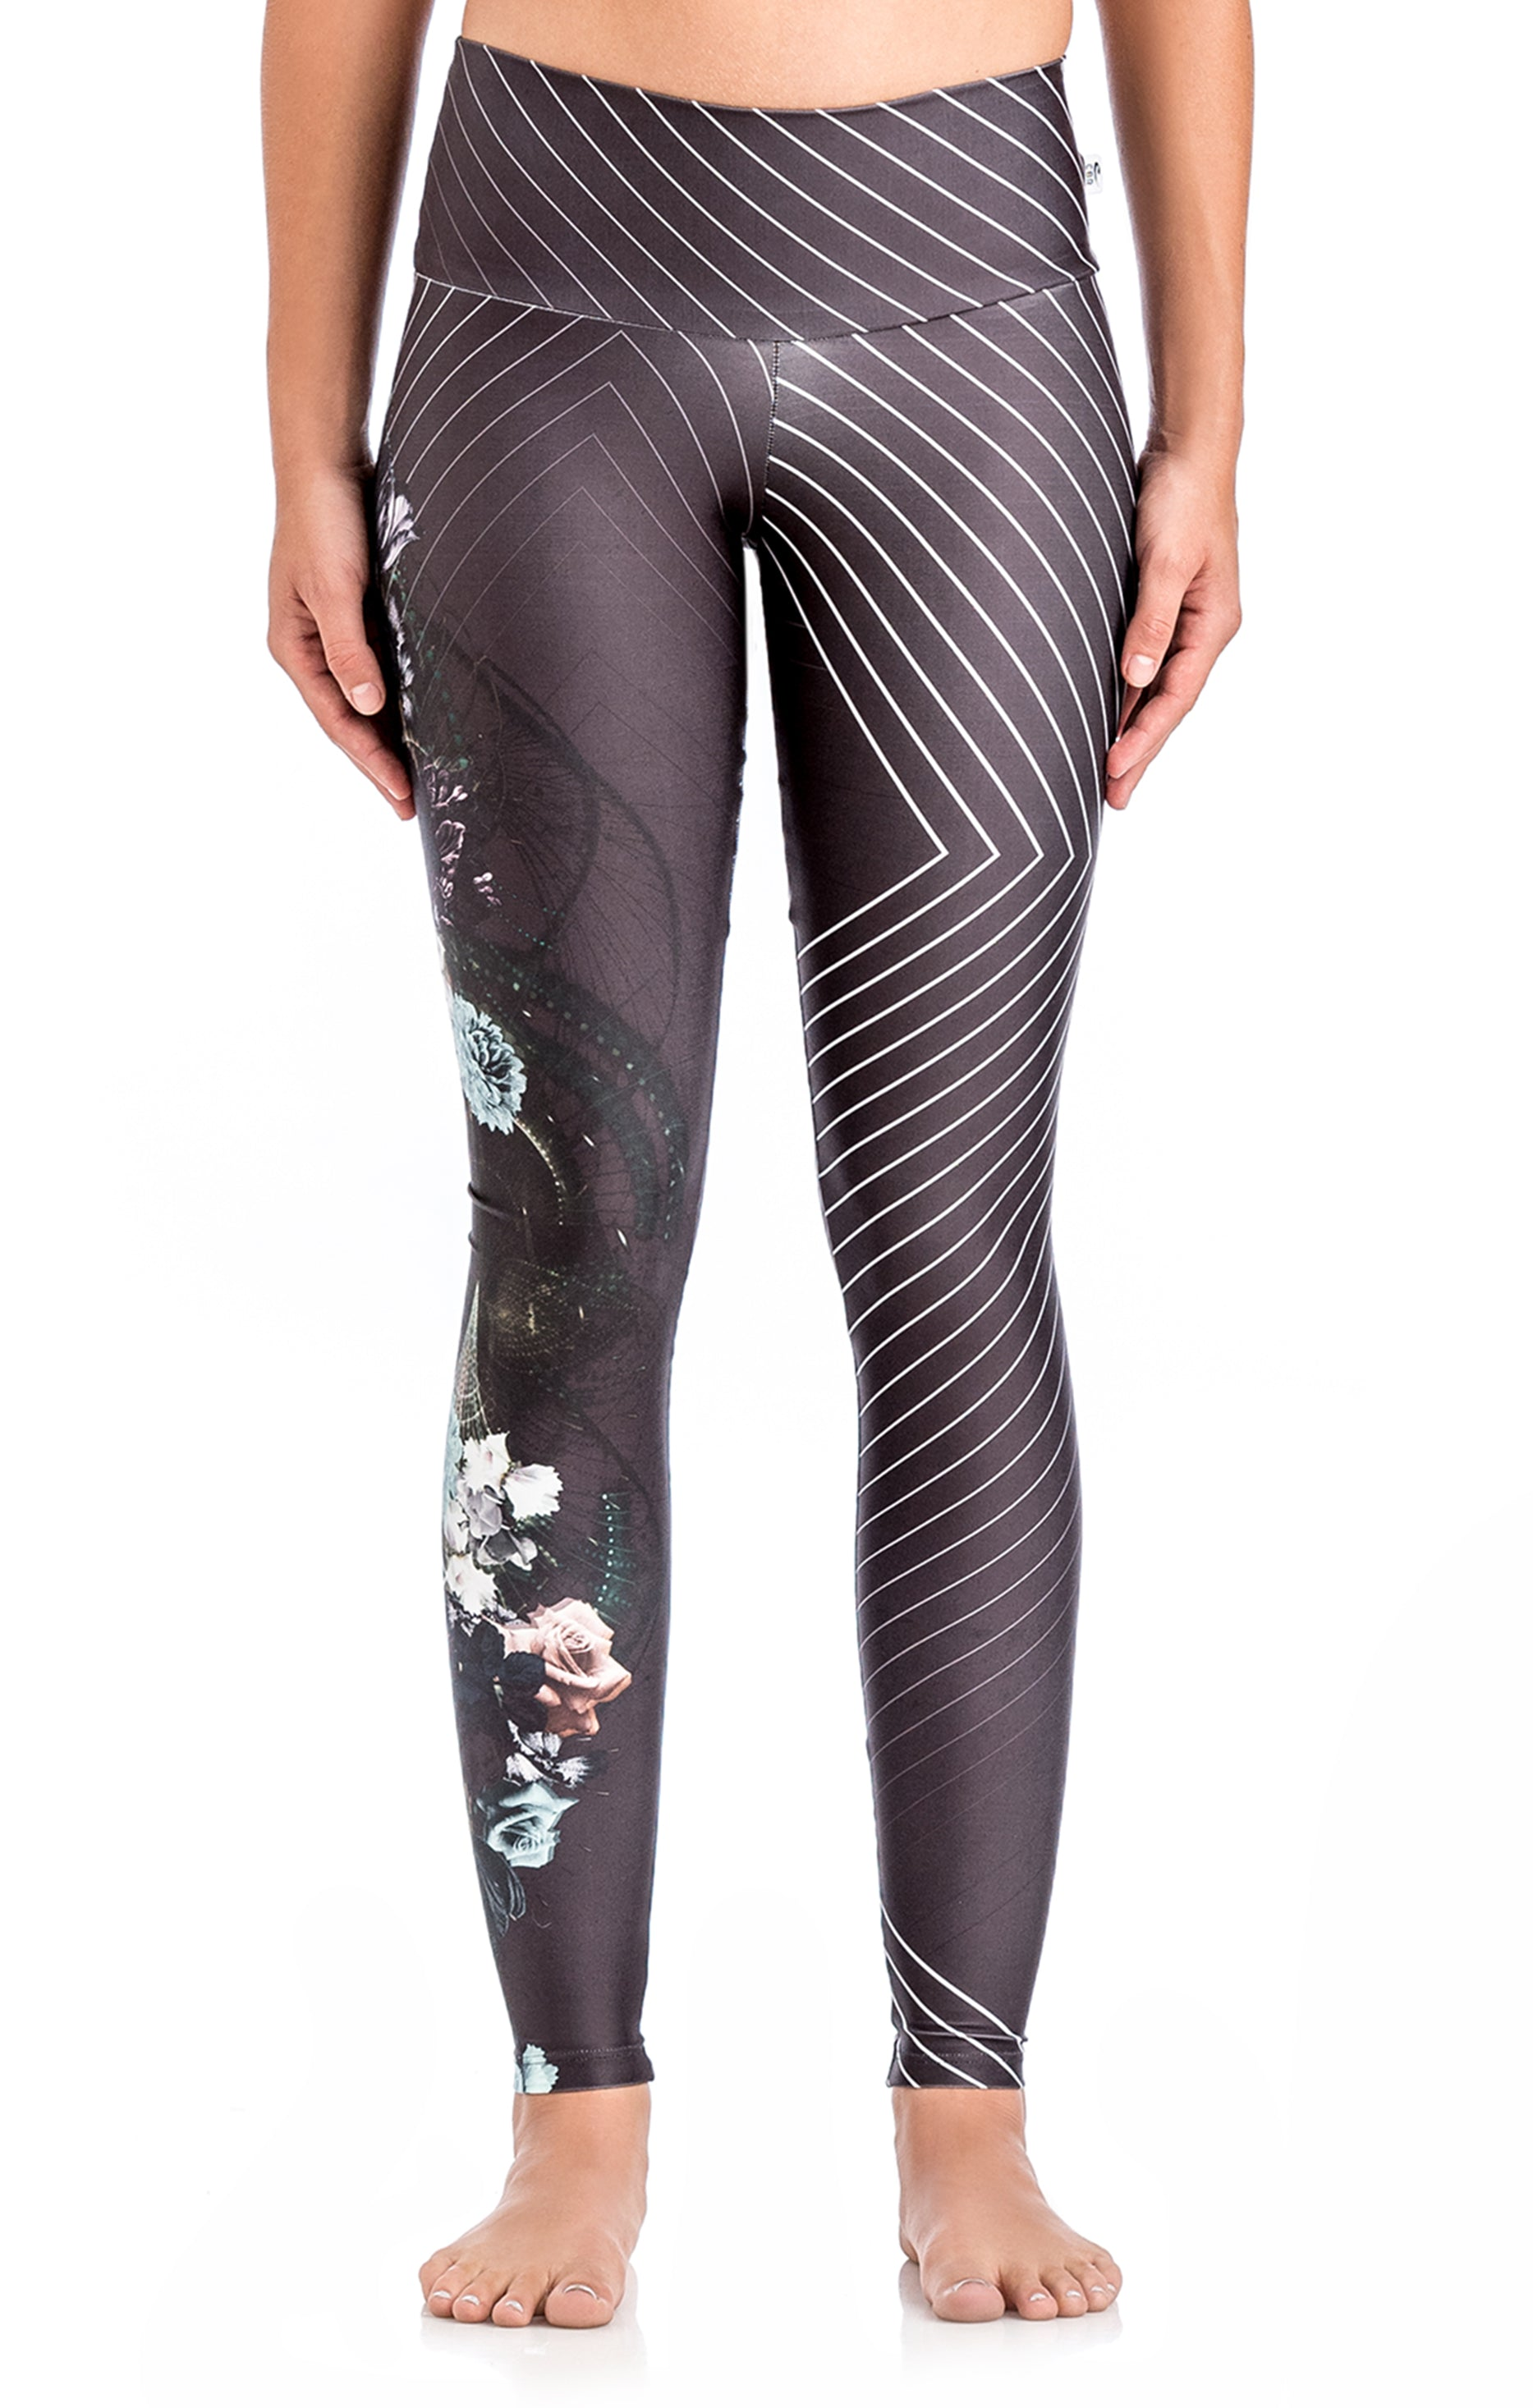 The Pose Legging - Workout Bottoms